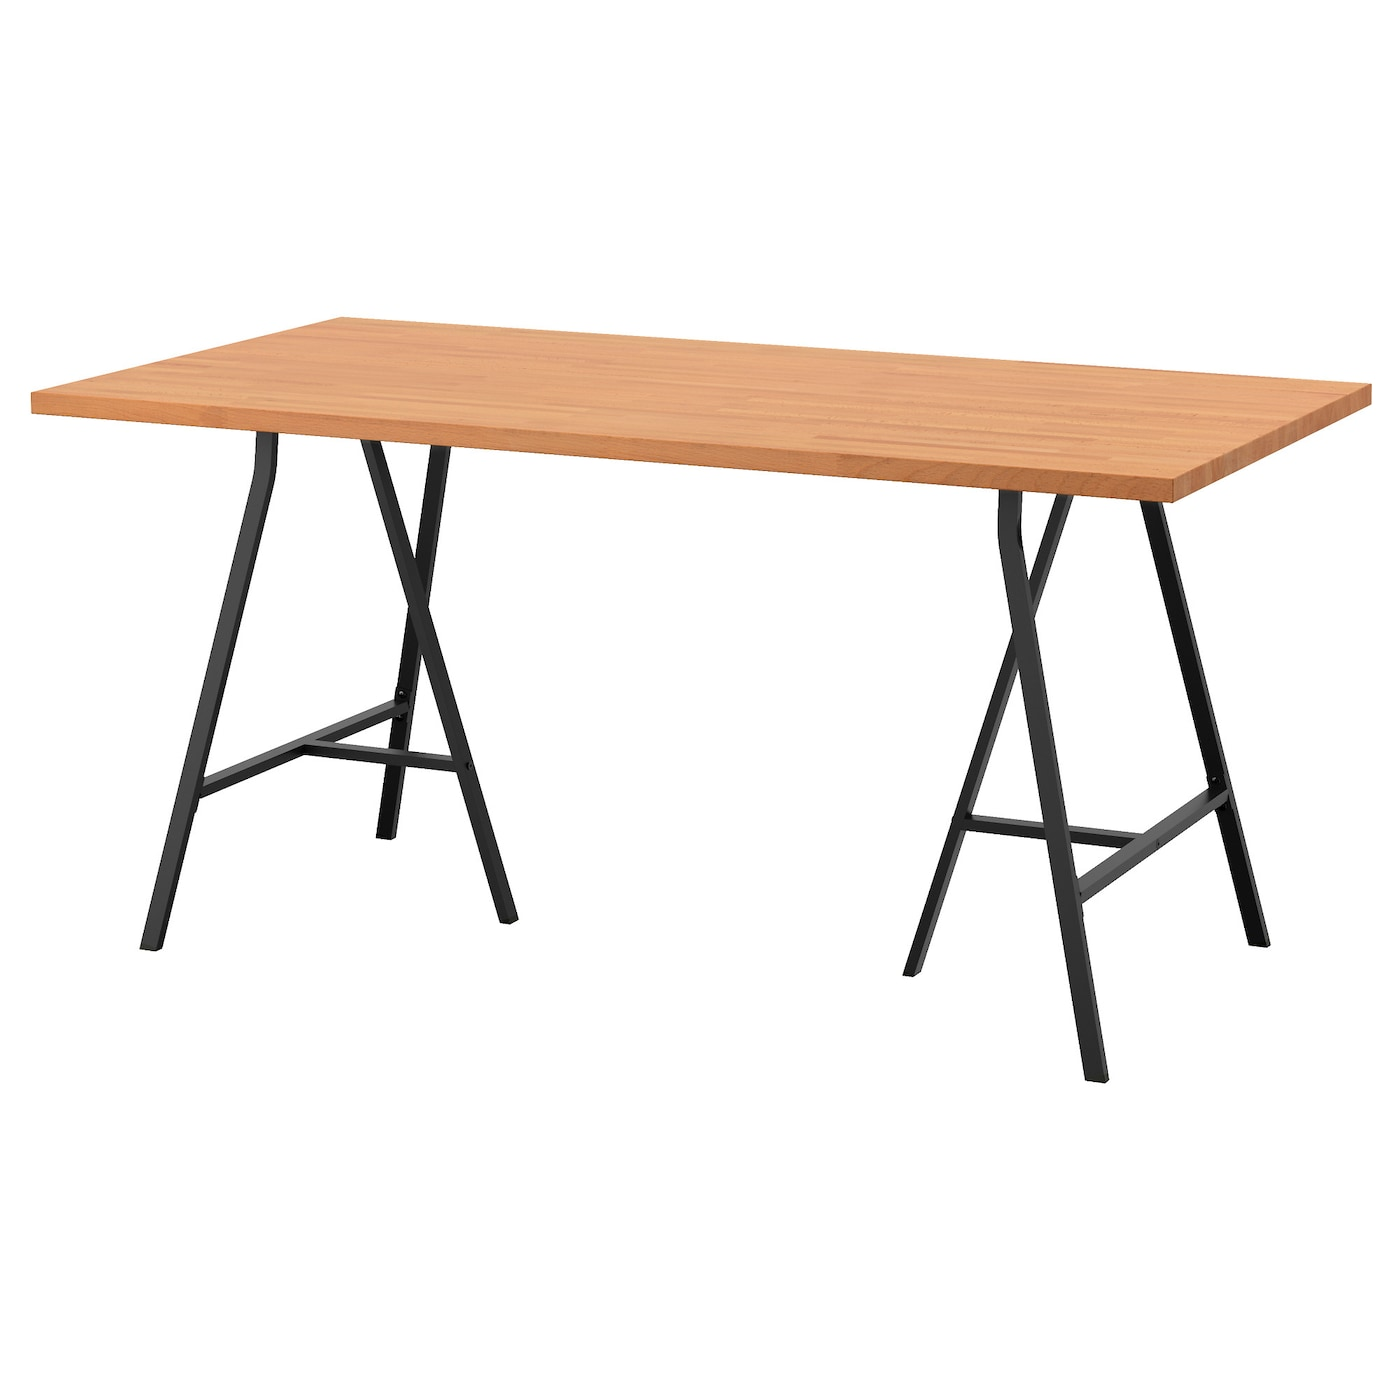 IKEA GERTON/LERBERG table Solid wood is a durable natural material.